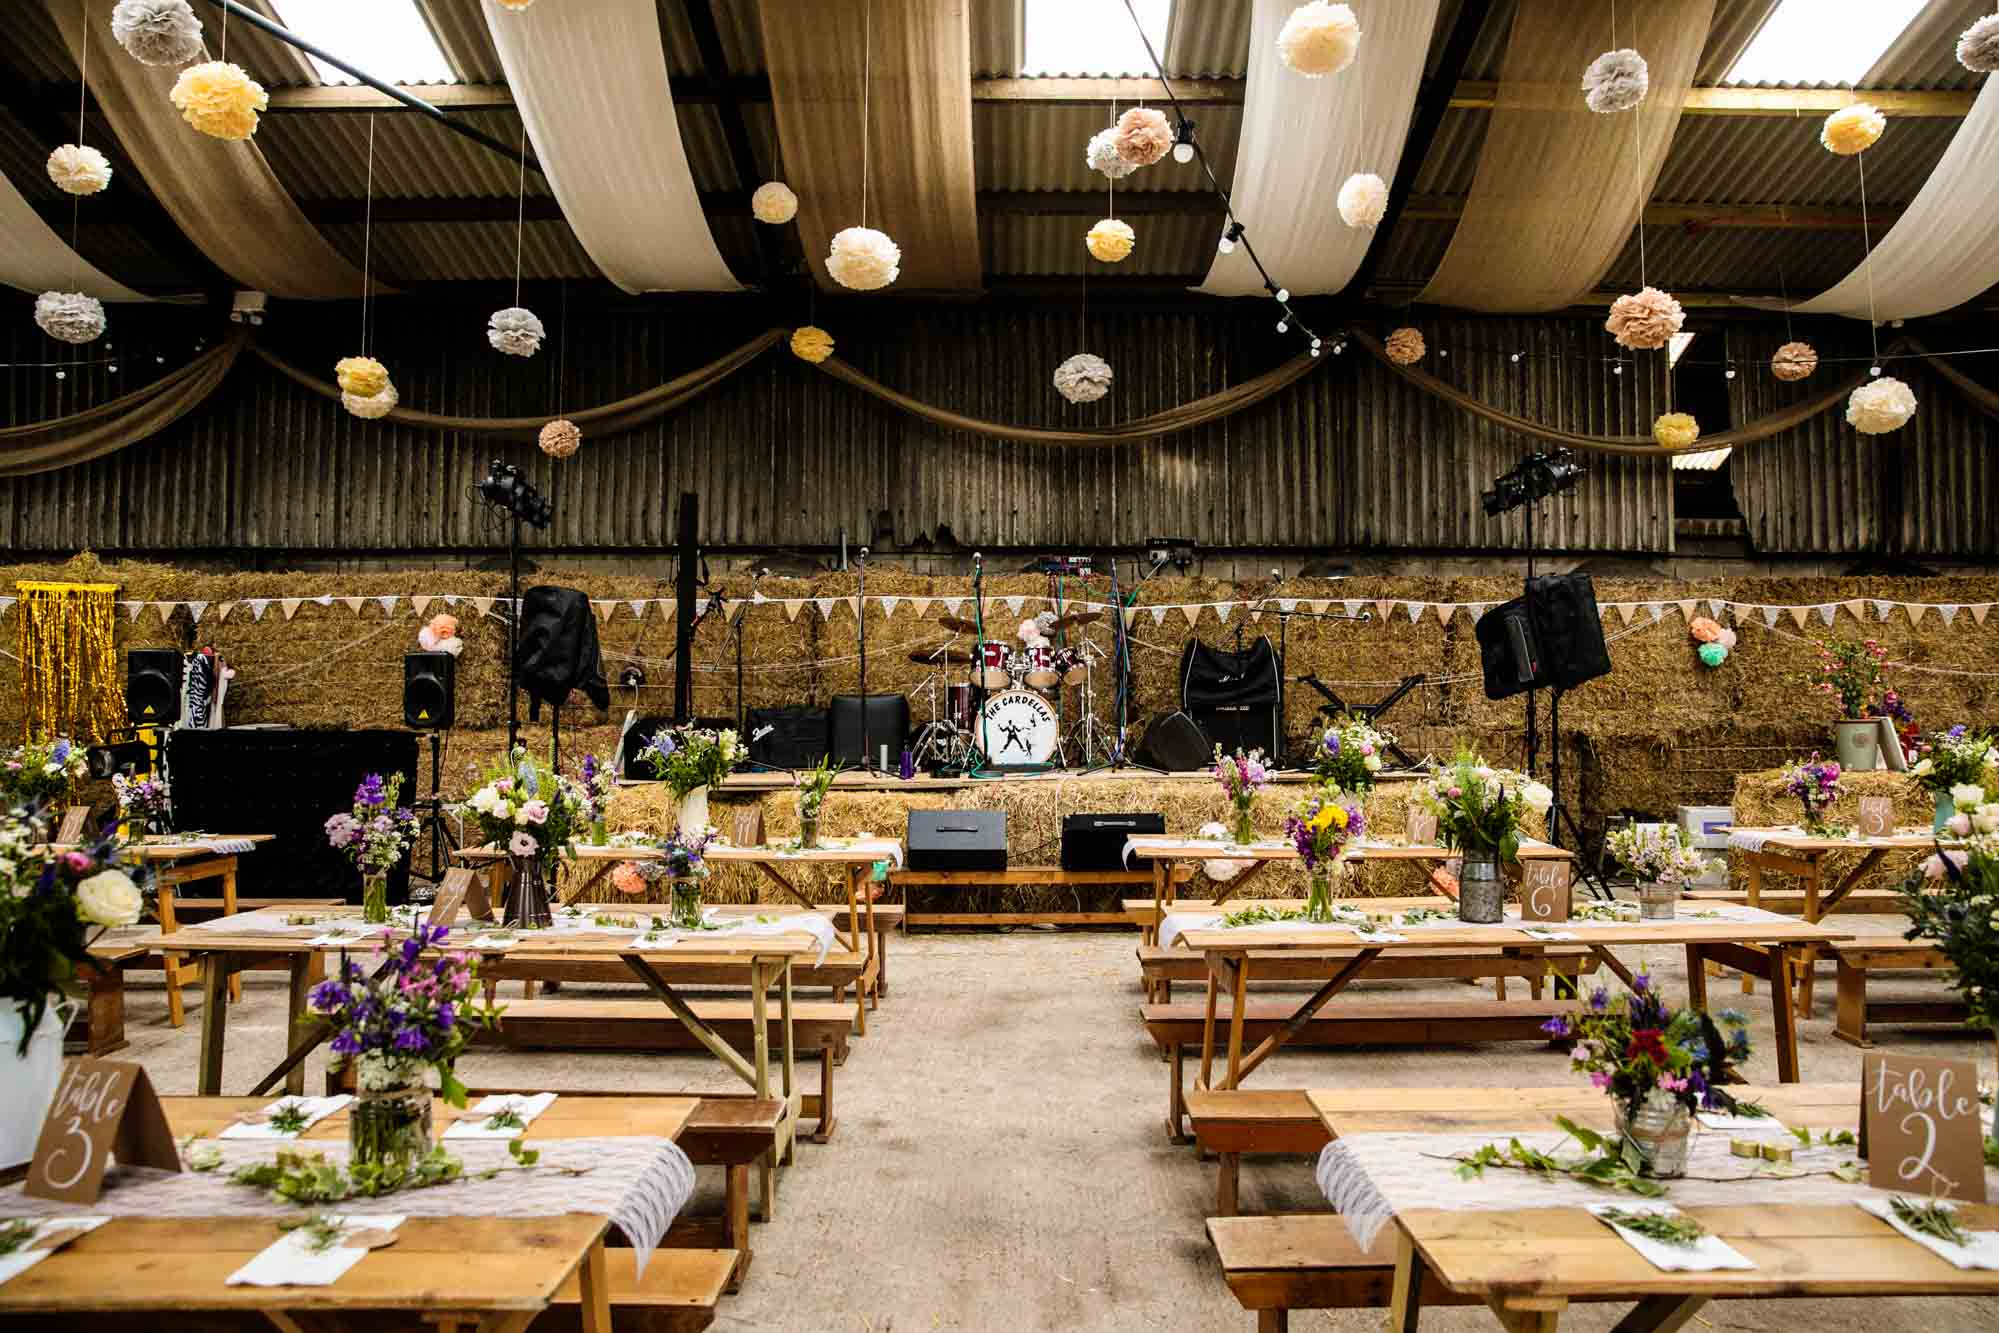 Thornsett Fields Farm Wedding Barn